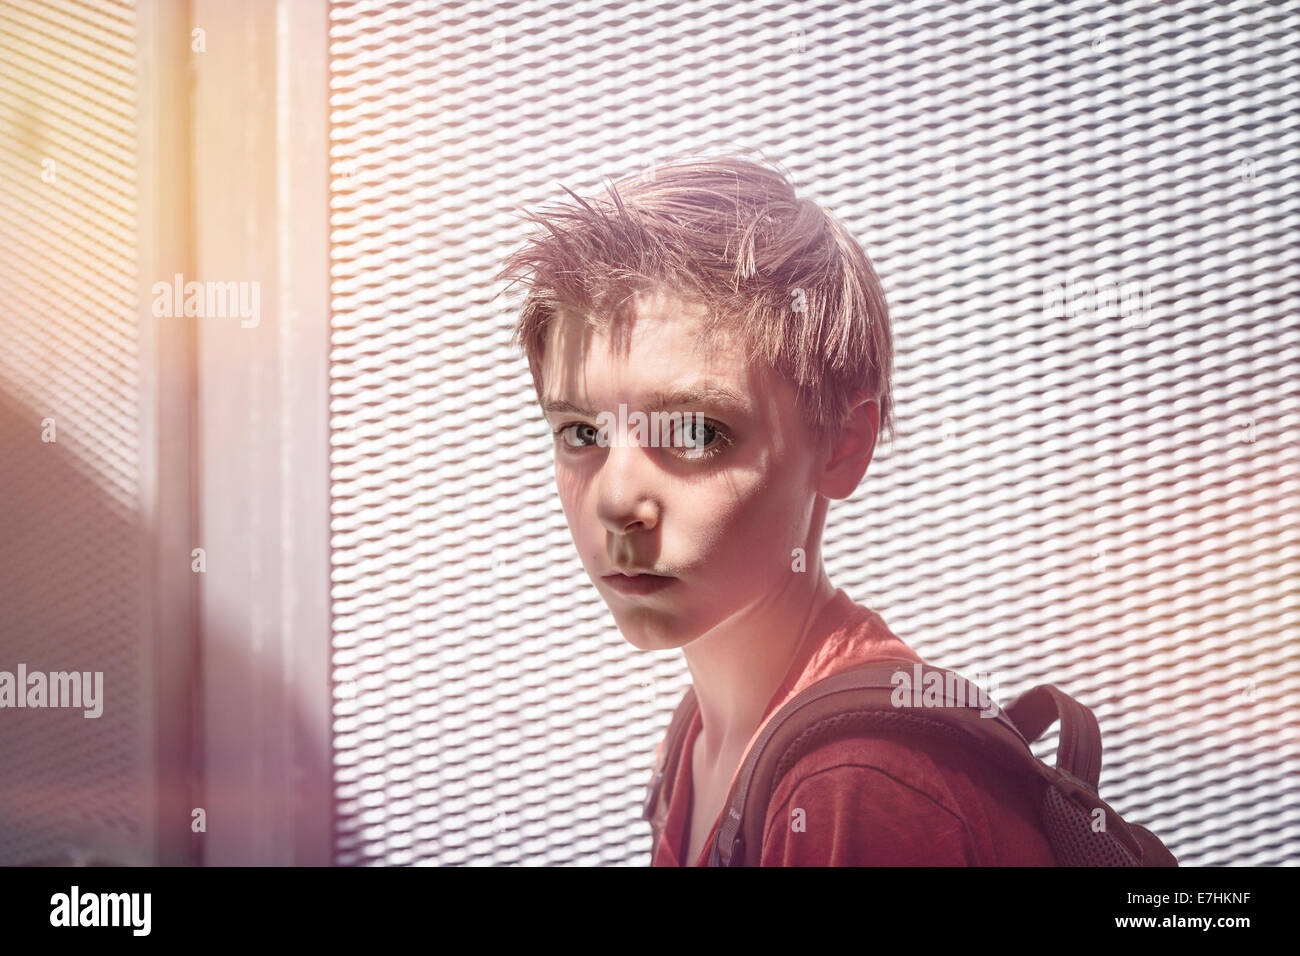 portrait of a teenager boy with rucksack and extreme light in front of a metal grid pattern - Stock Image